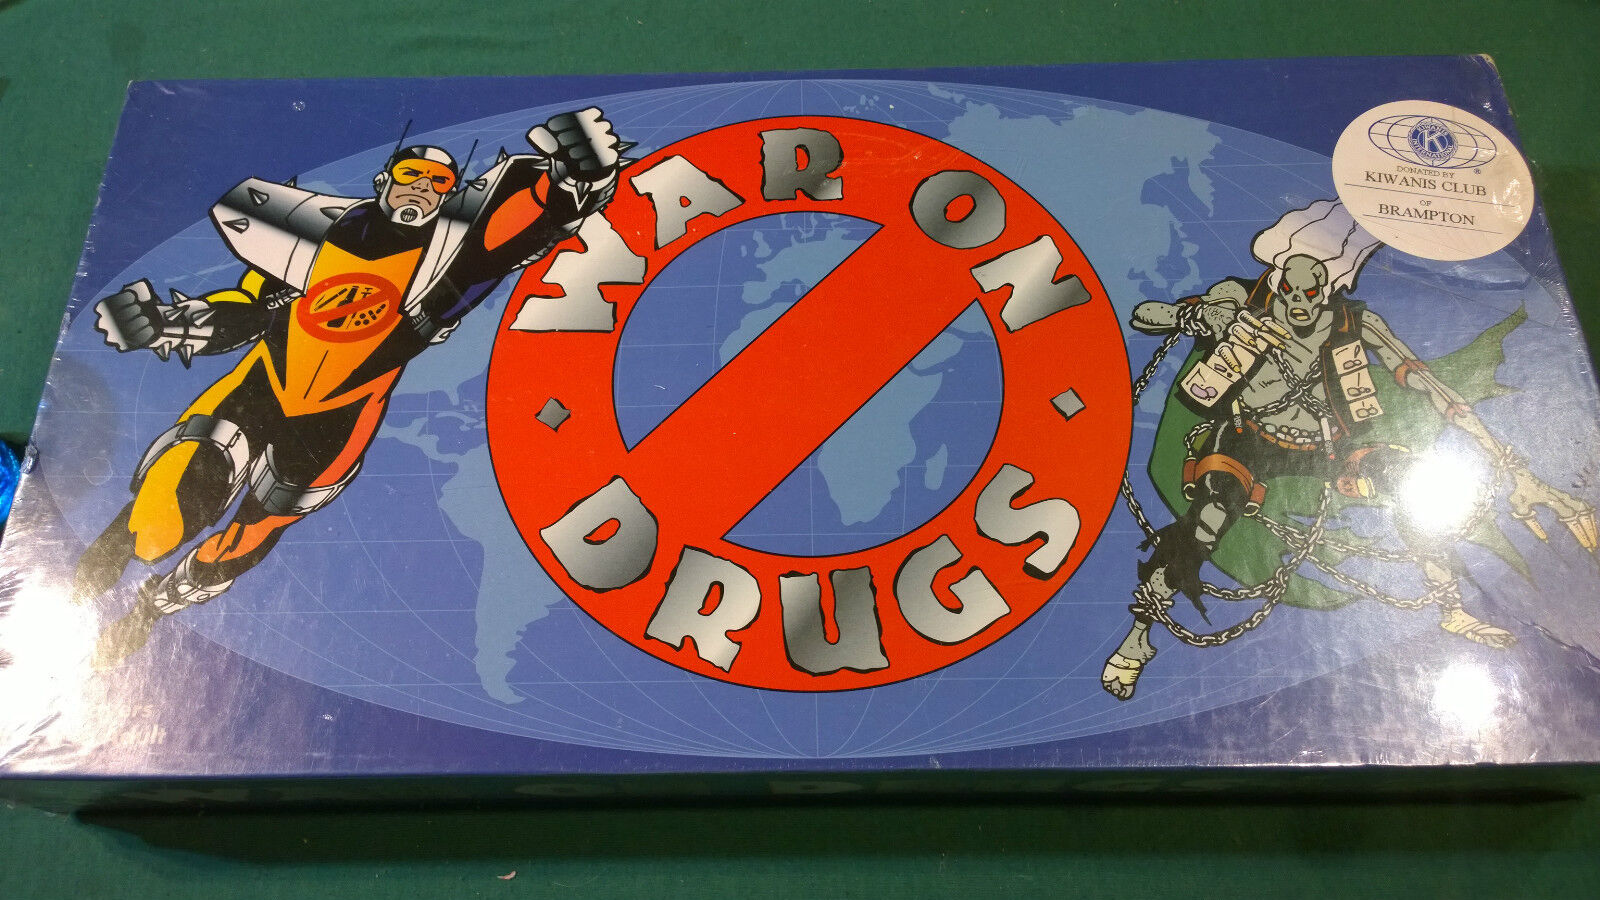 Vintage 1989 WAR ON DRUGS tavola gioco  nuovo SEALED kitsch ironic weed marijuana  alta qualità